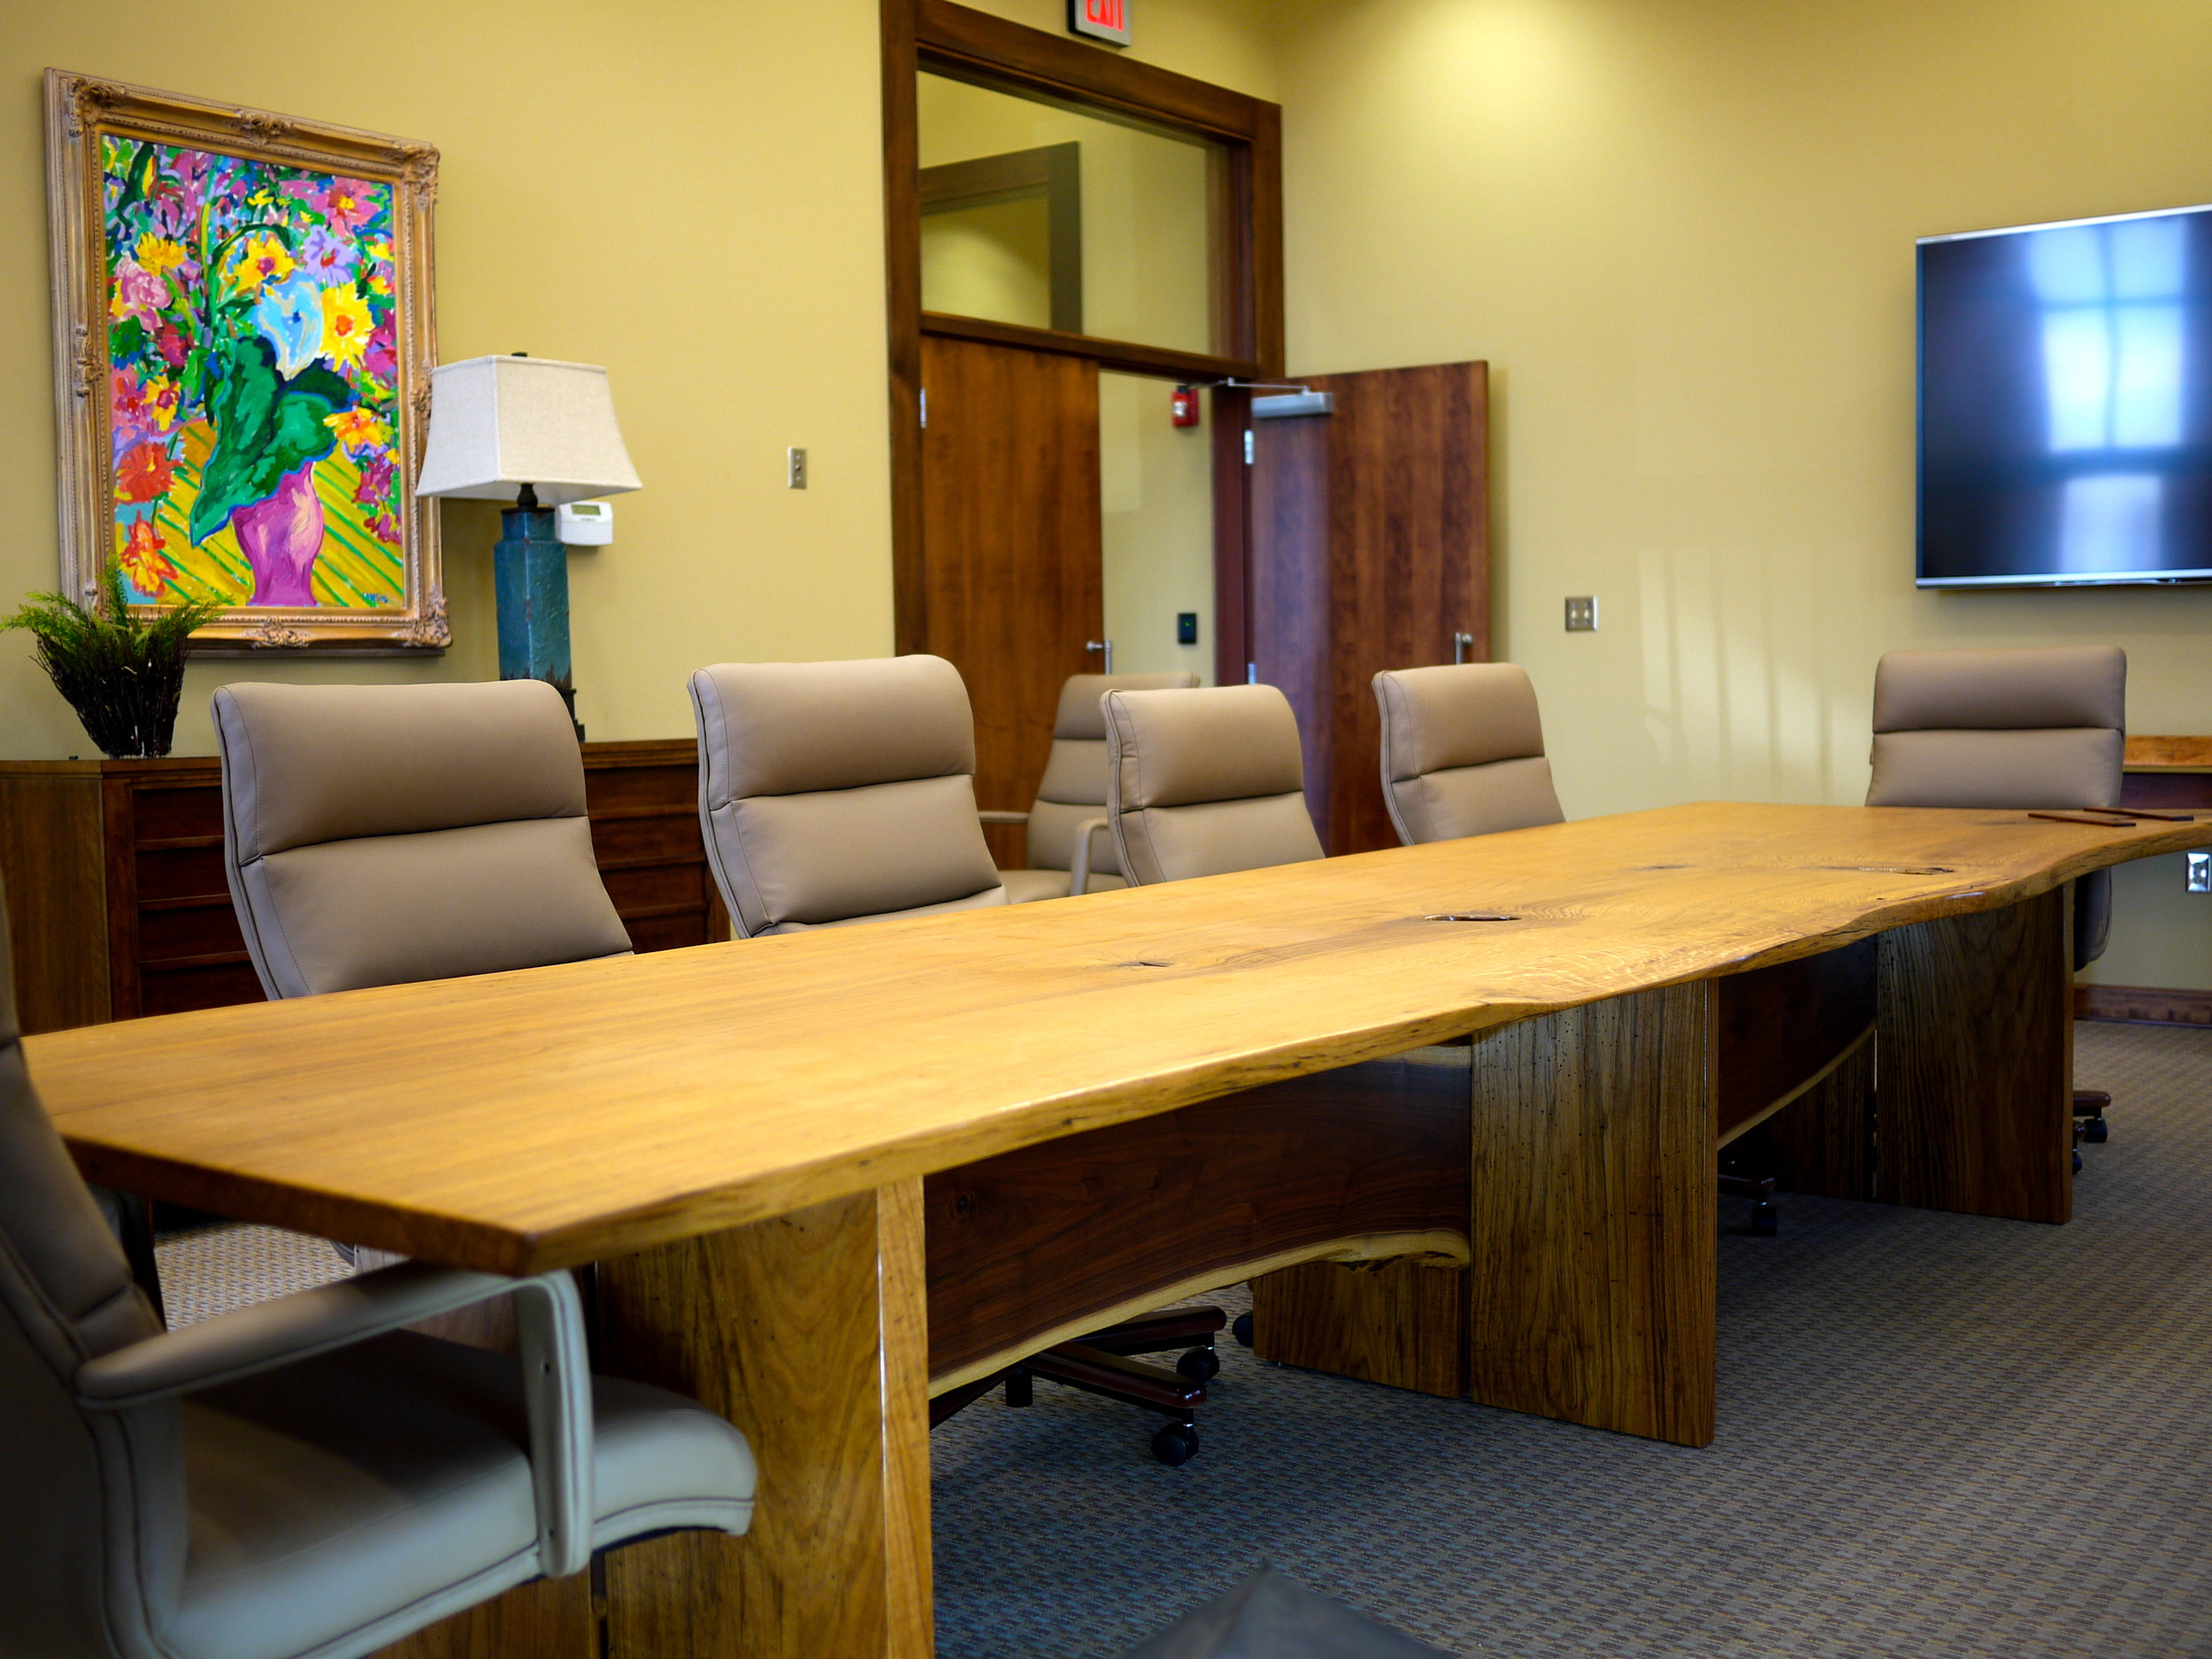 3progress conference table.jpg